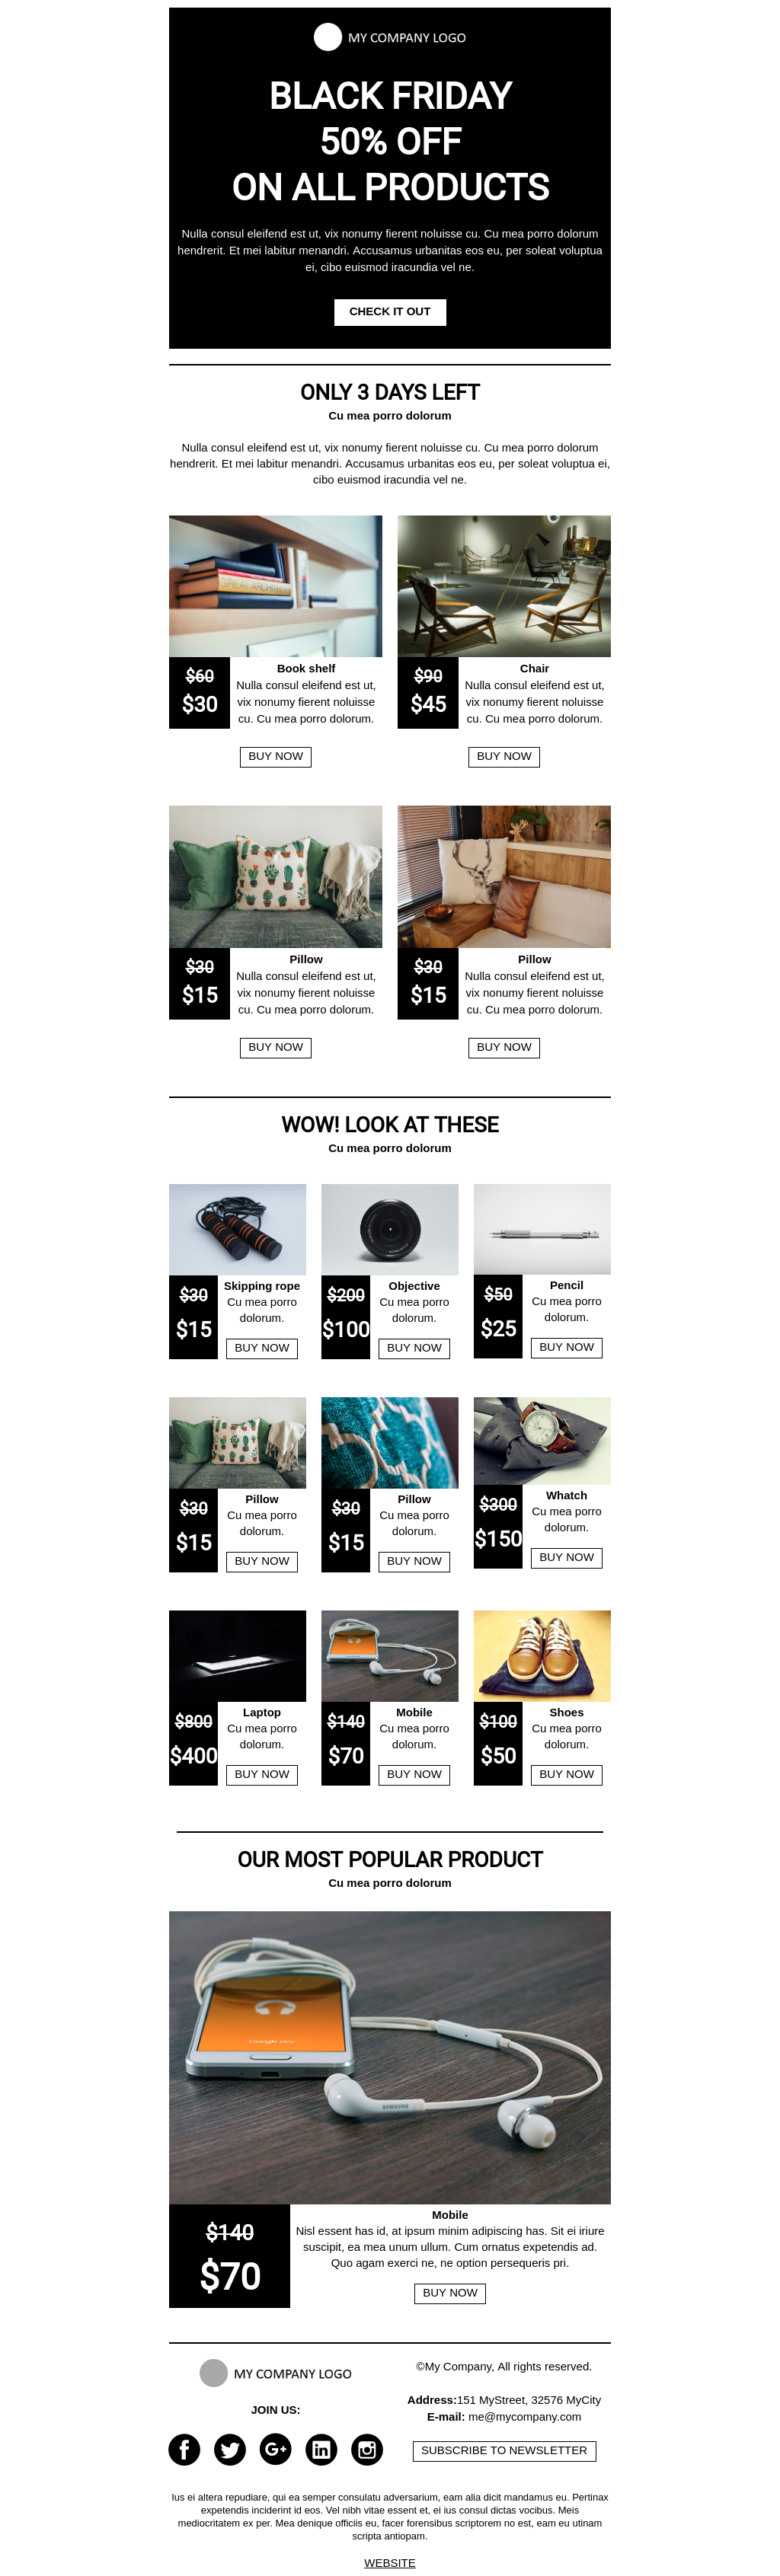 Ecommerce Black Friday flat design email template